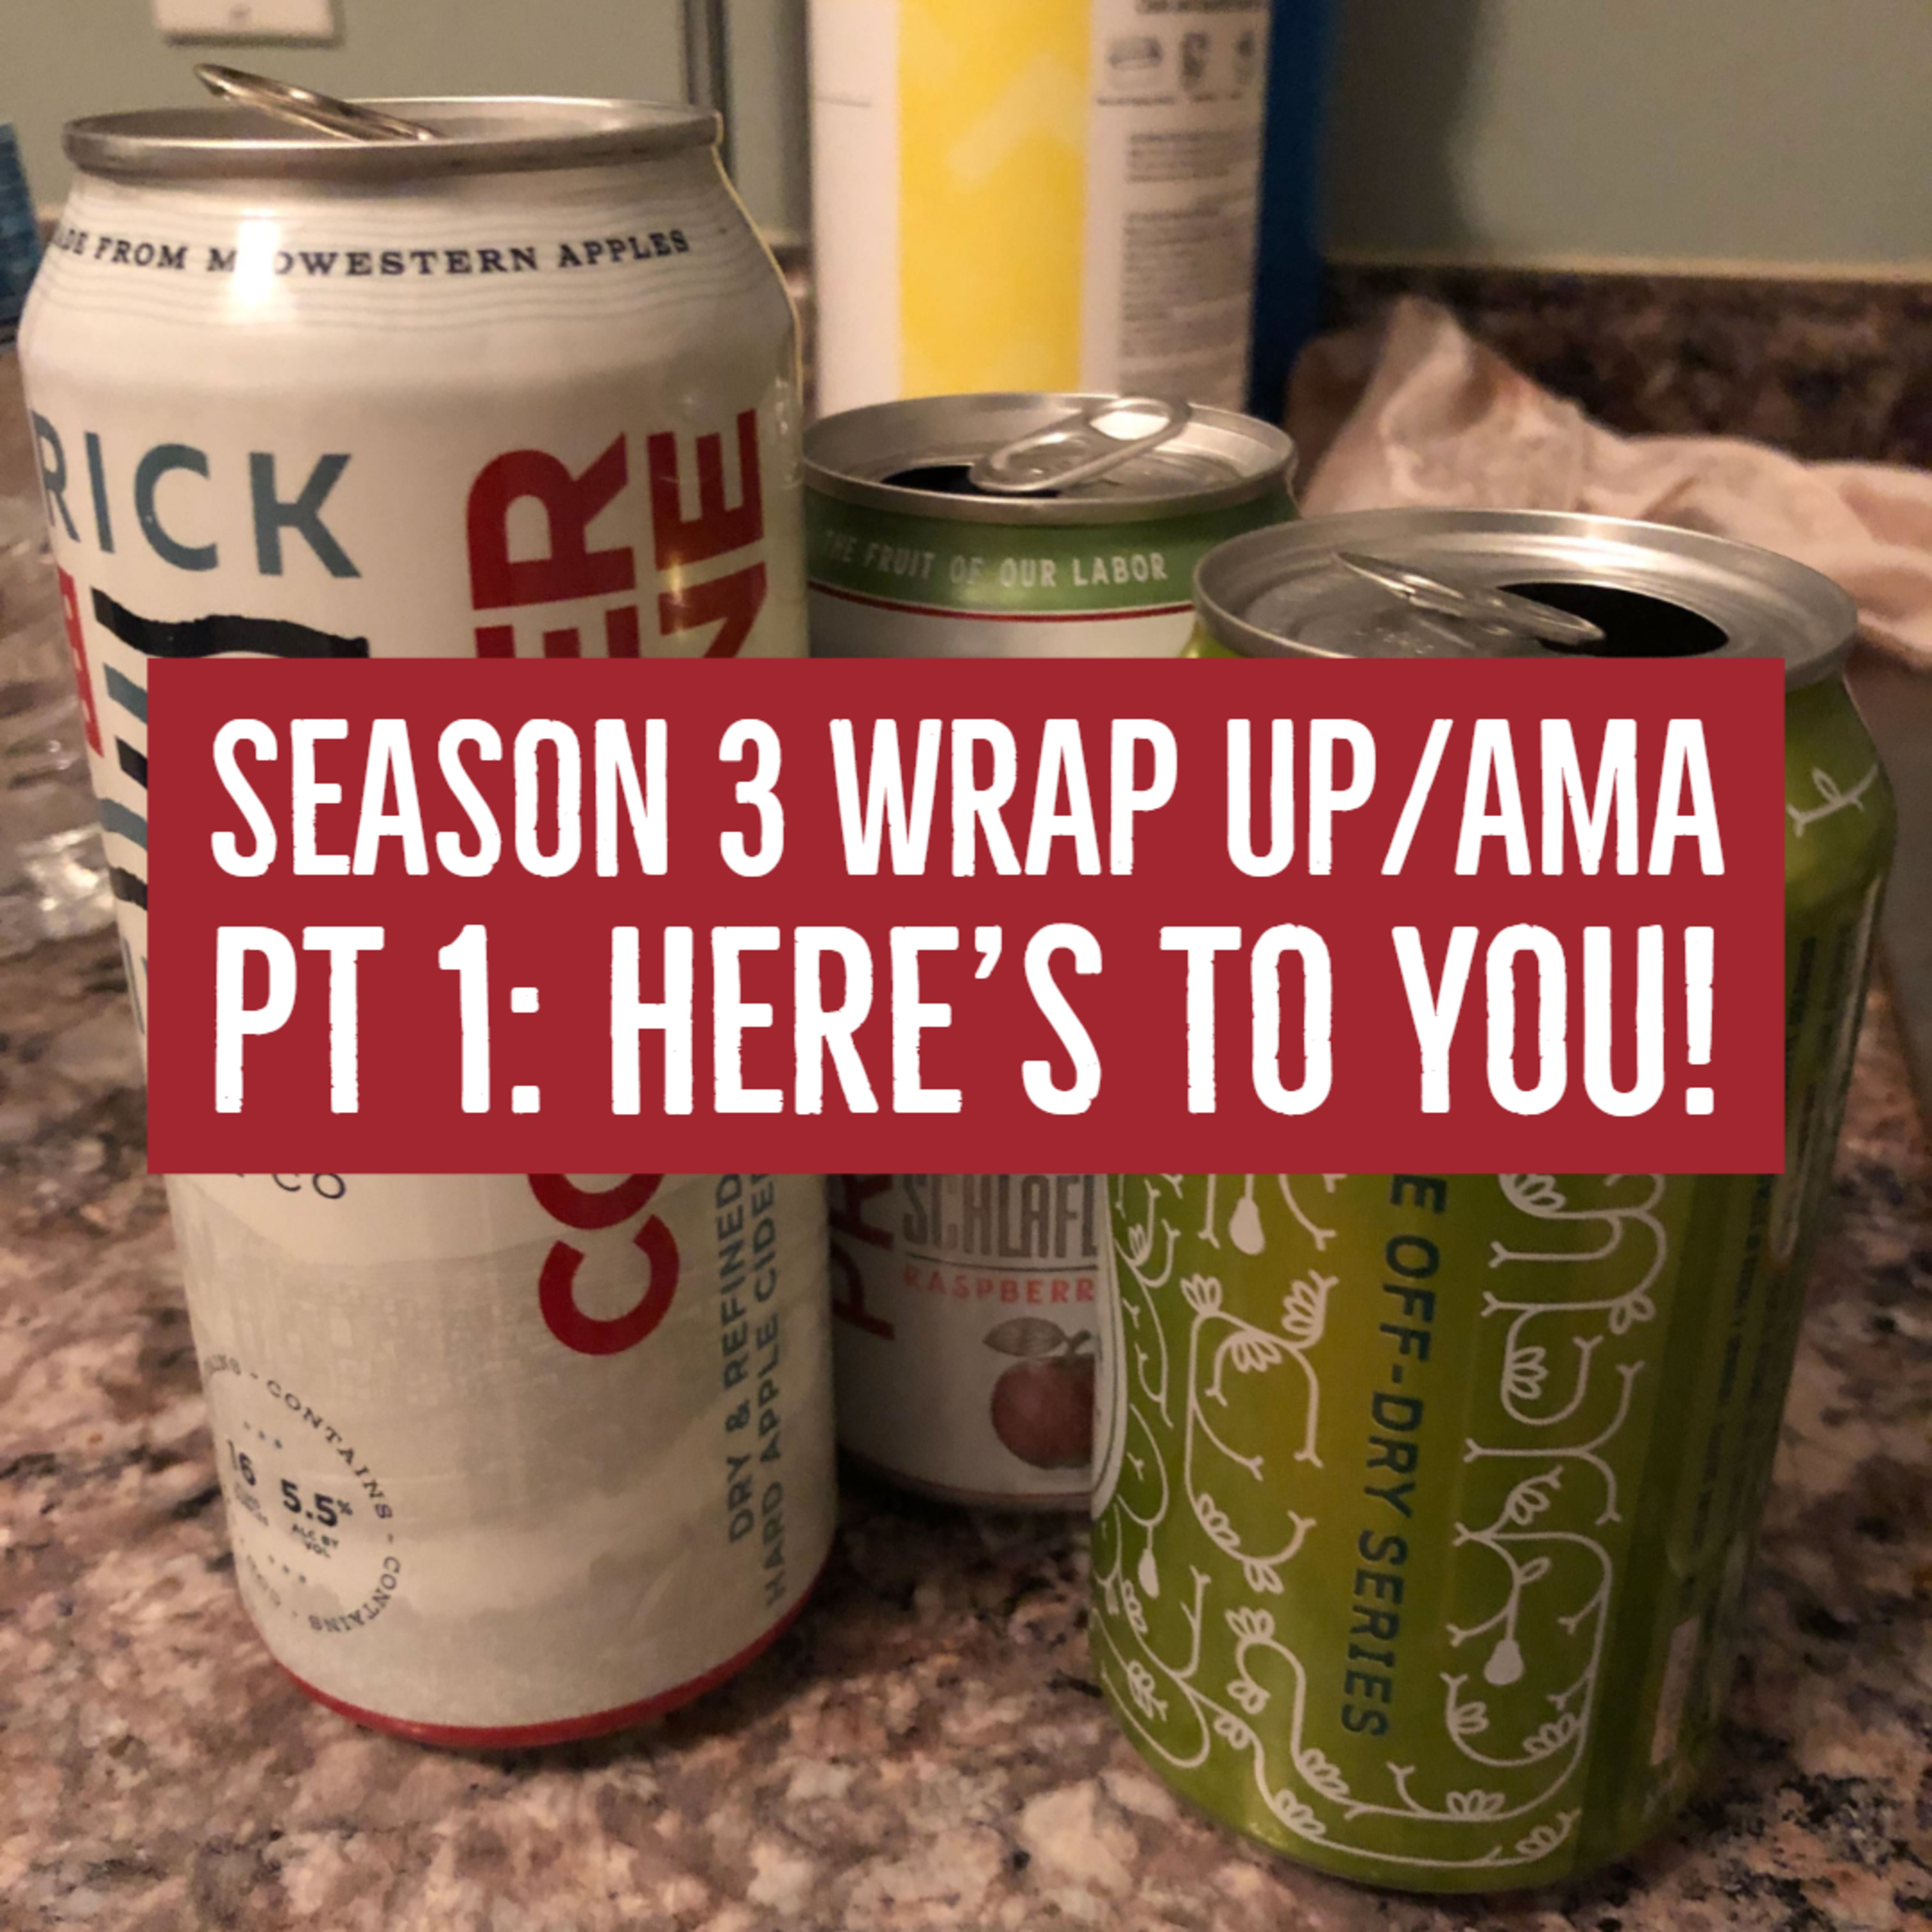 S3 Wrap Up/AMA - Pt1: Let's drink and talk about things